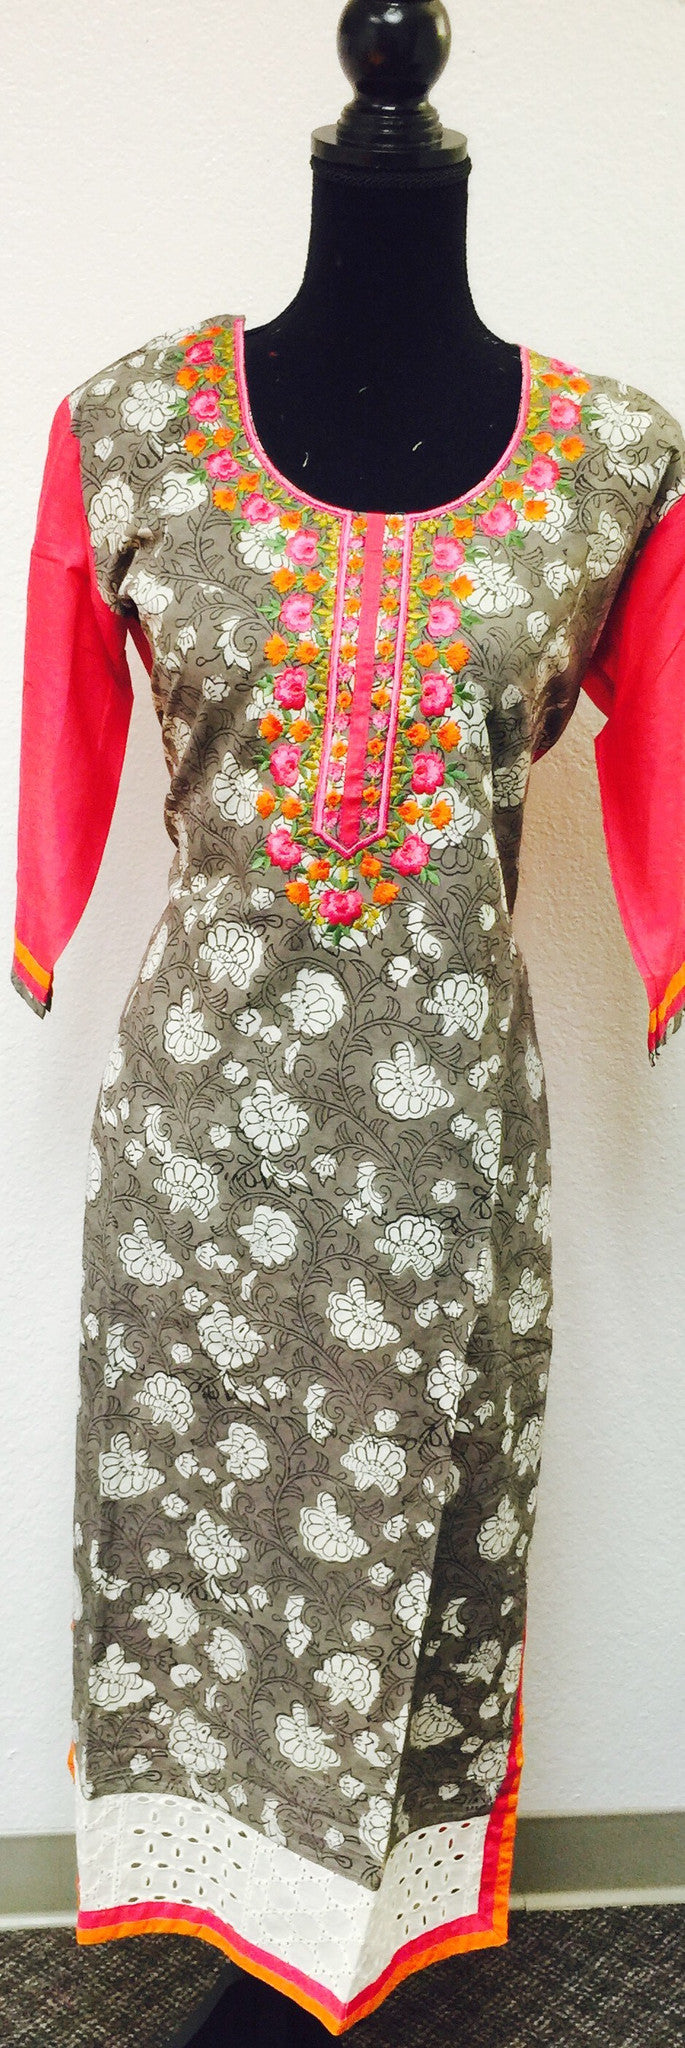 Fdn0146 A EMBROIDERED KURTA